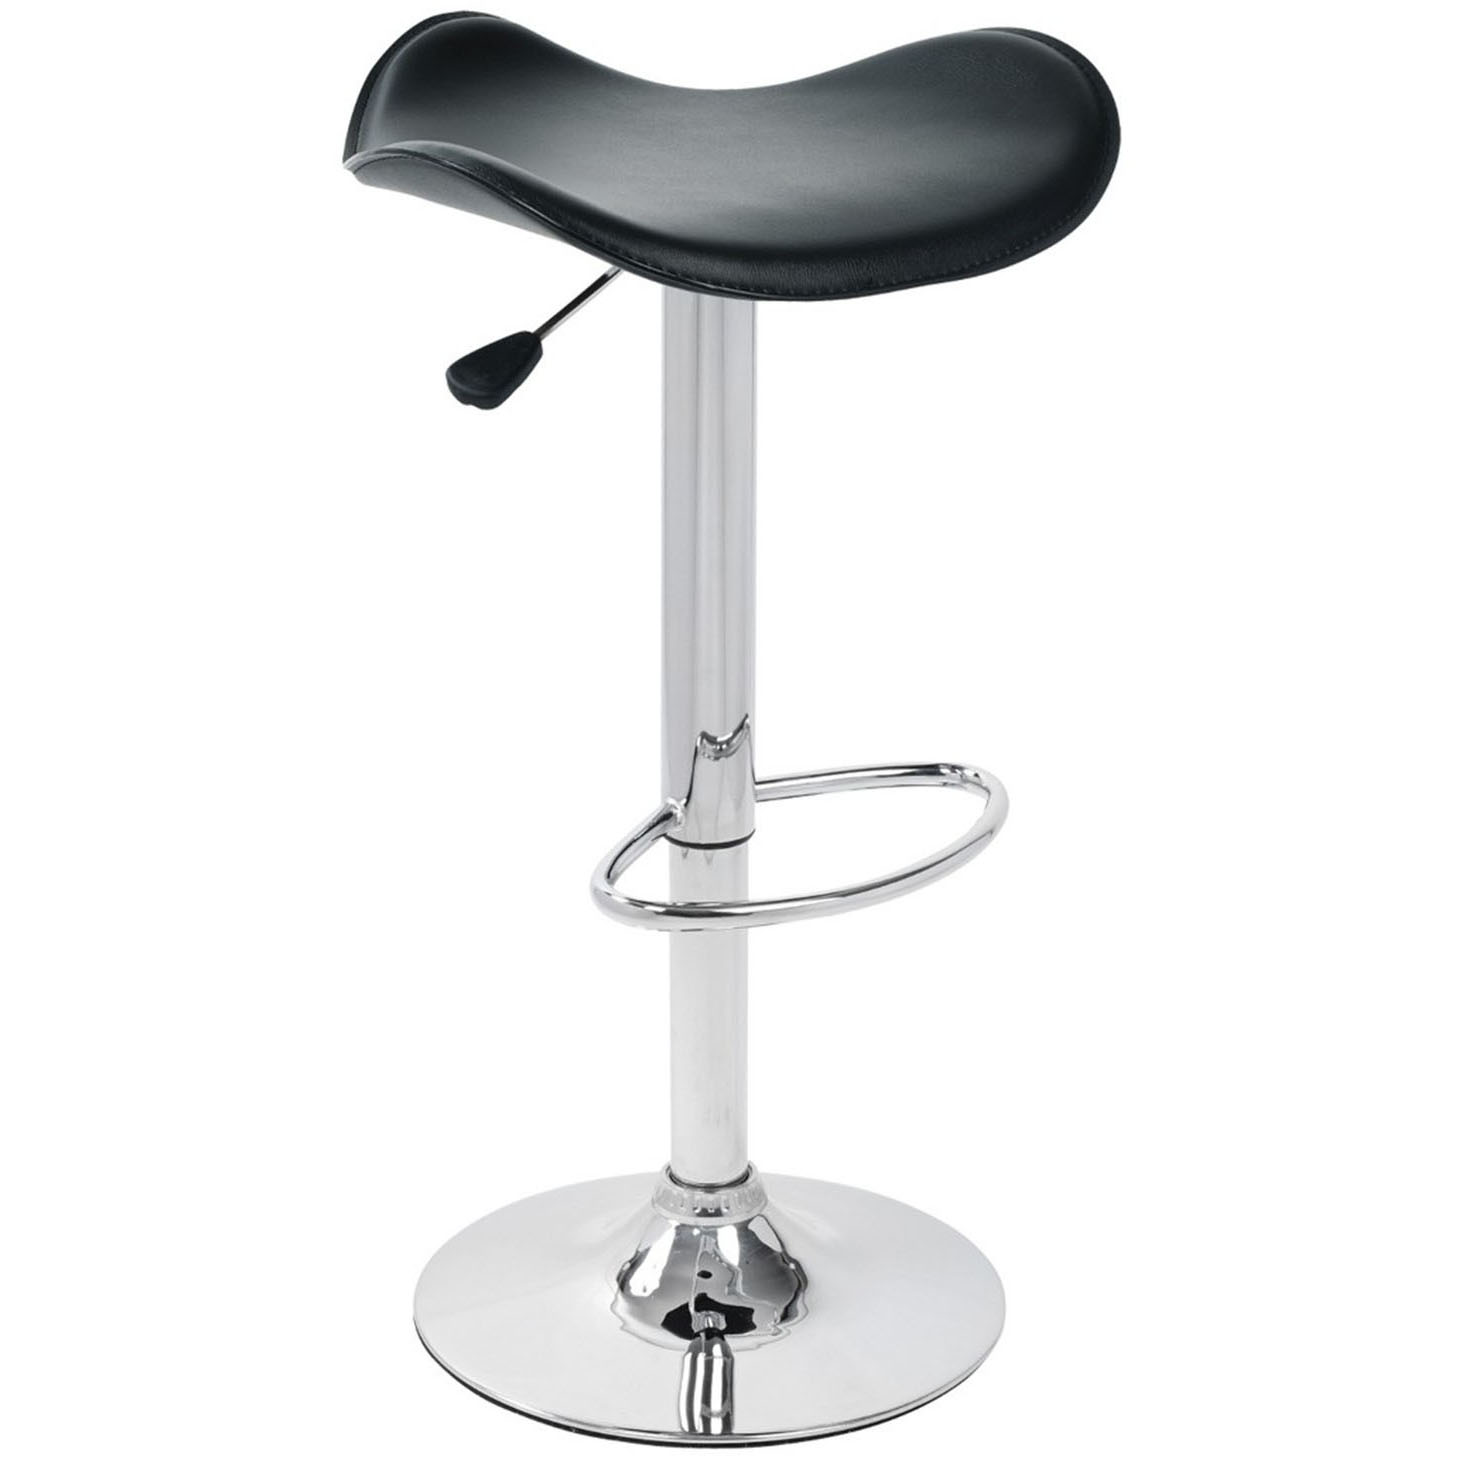 Venus Bar Stool - Black